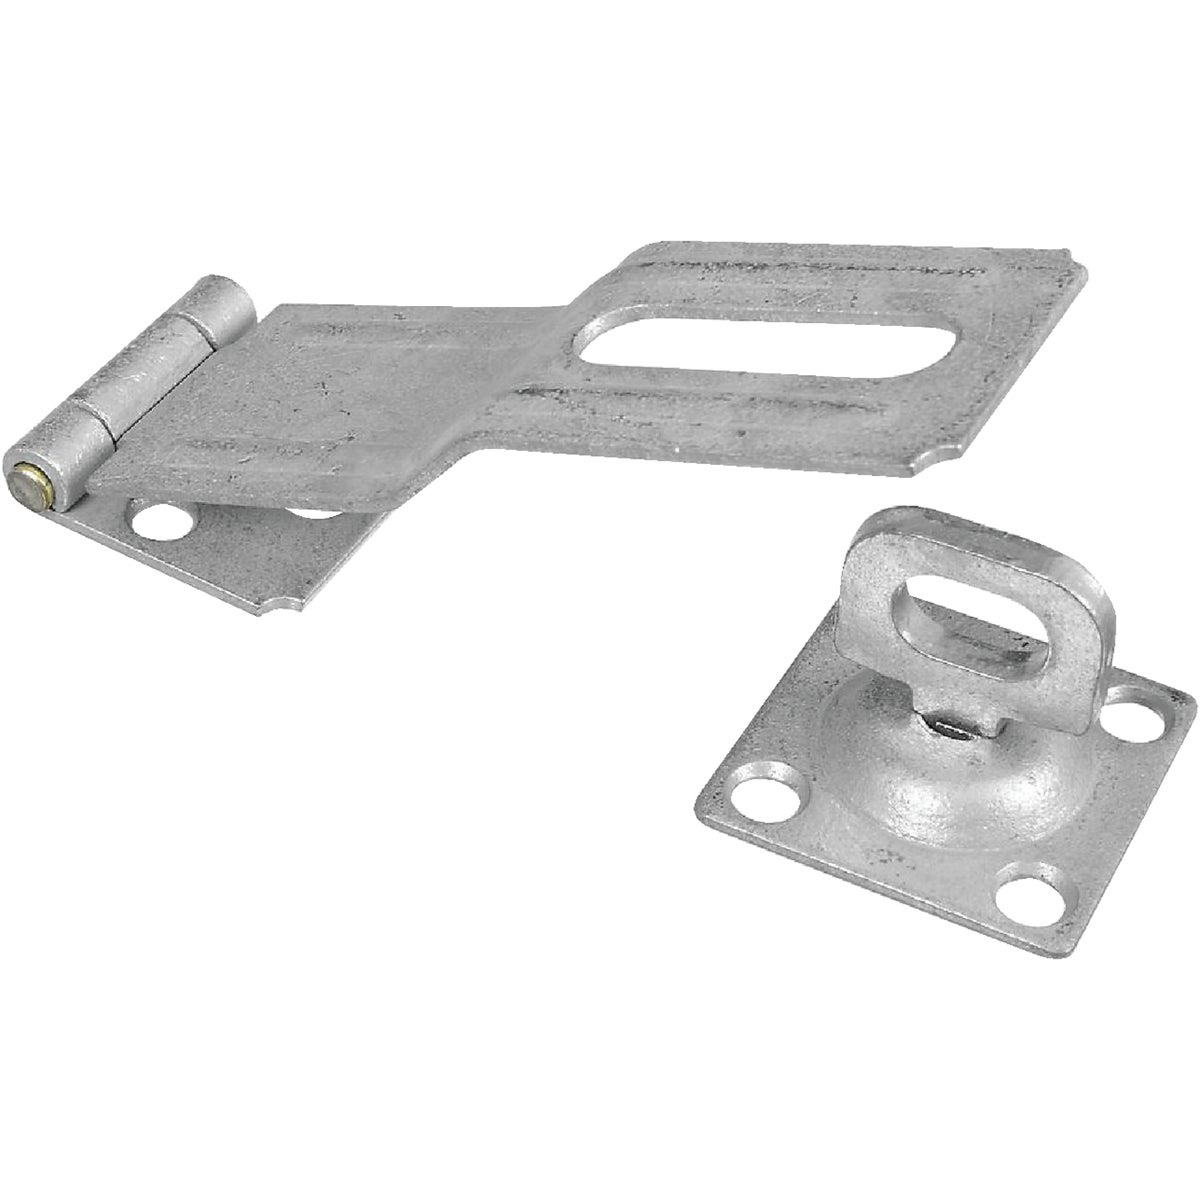 "4-1/2""SWIVEL SAFETY HASP"